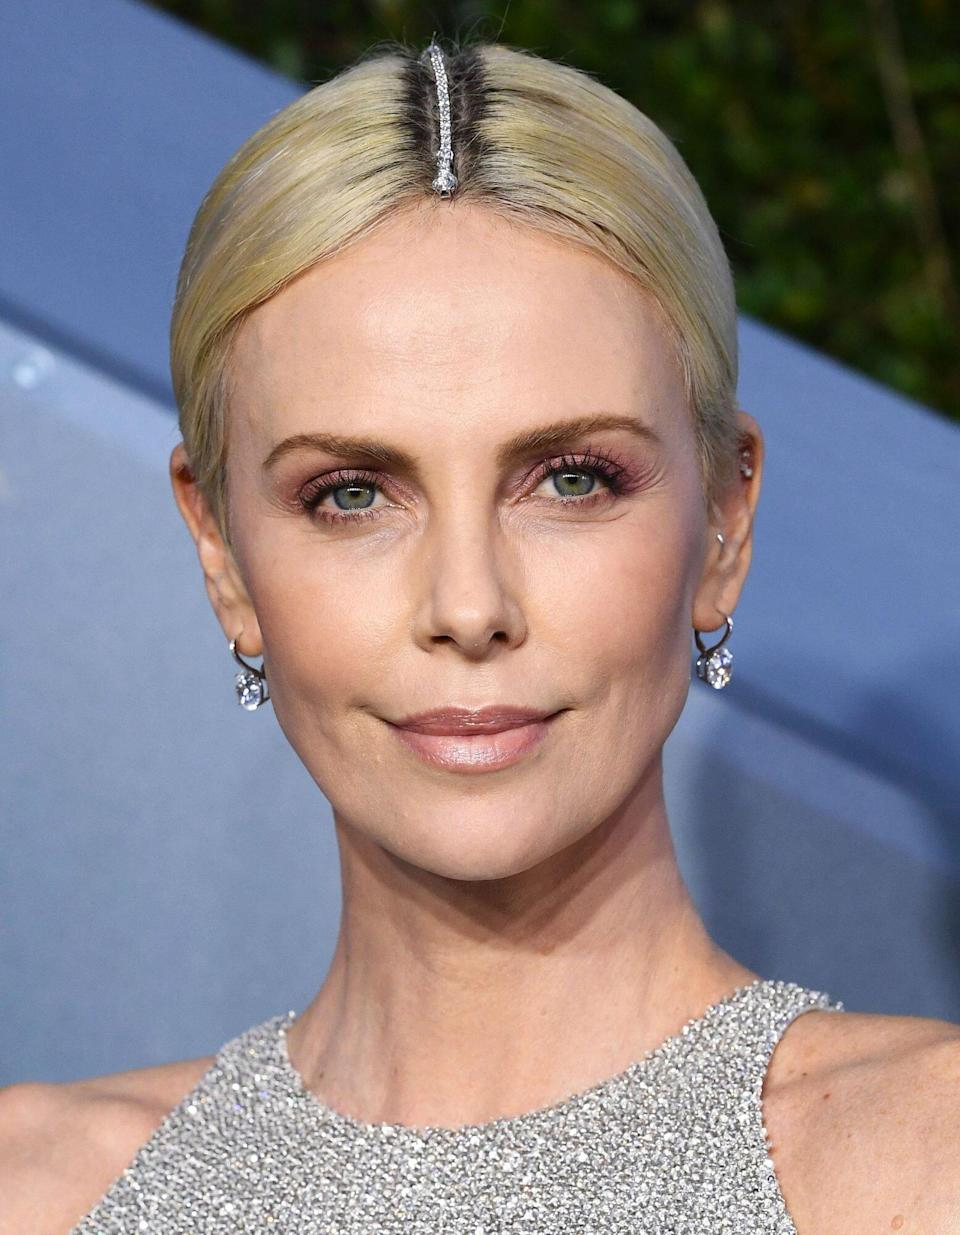 Charlize Theron 26th Annual Screen Actors Guild Awards, Arrivals, Shrine Auditorium, Los Angeles, USA - 19 Jan 2020